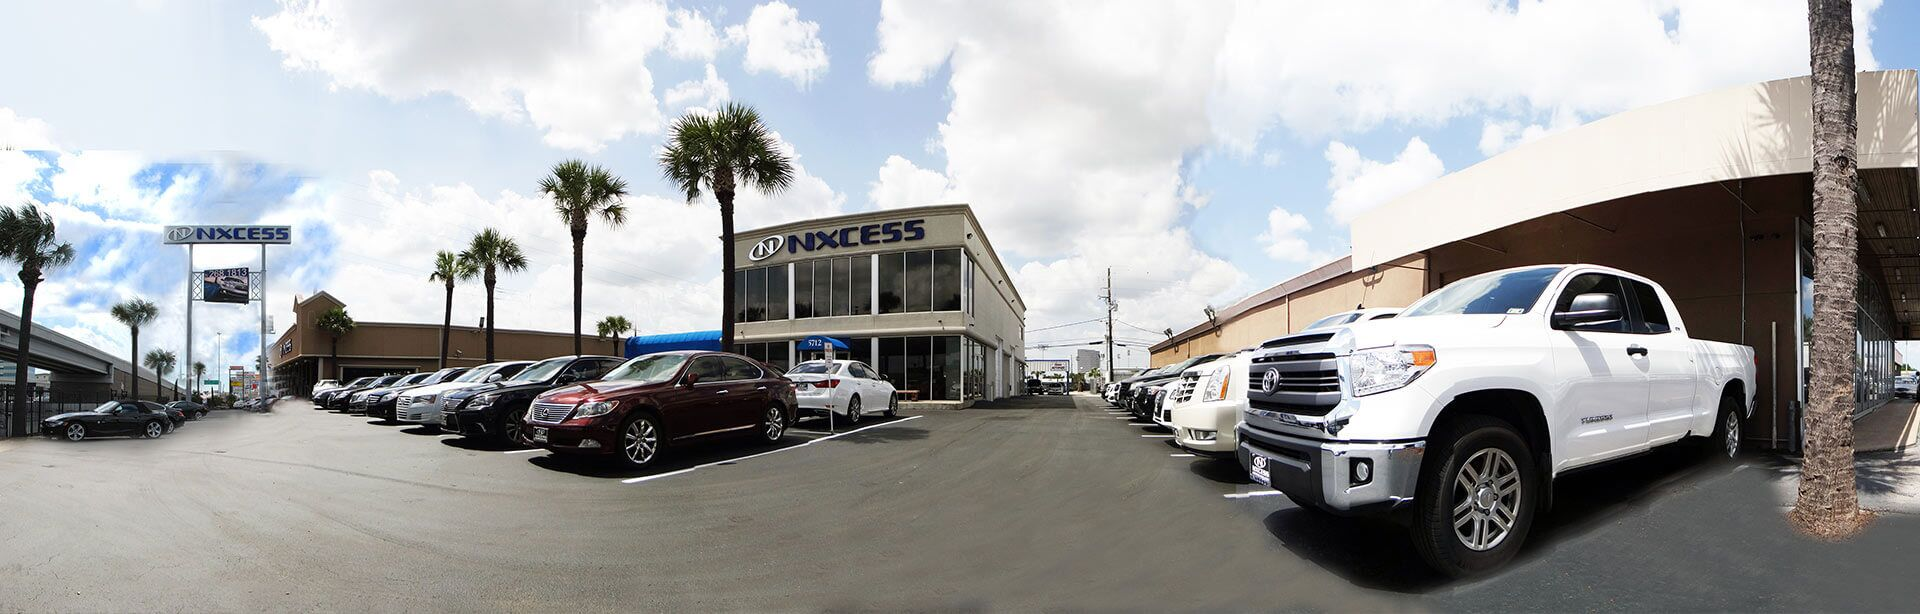 Welcome to NXCESS Motorcars